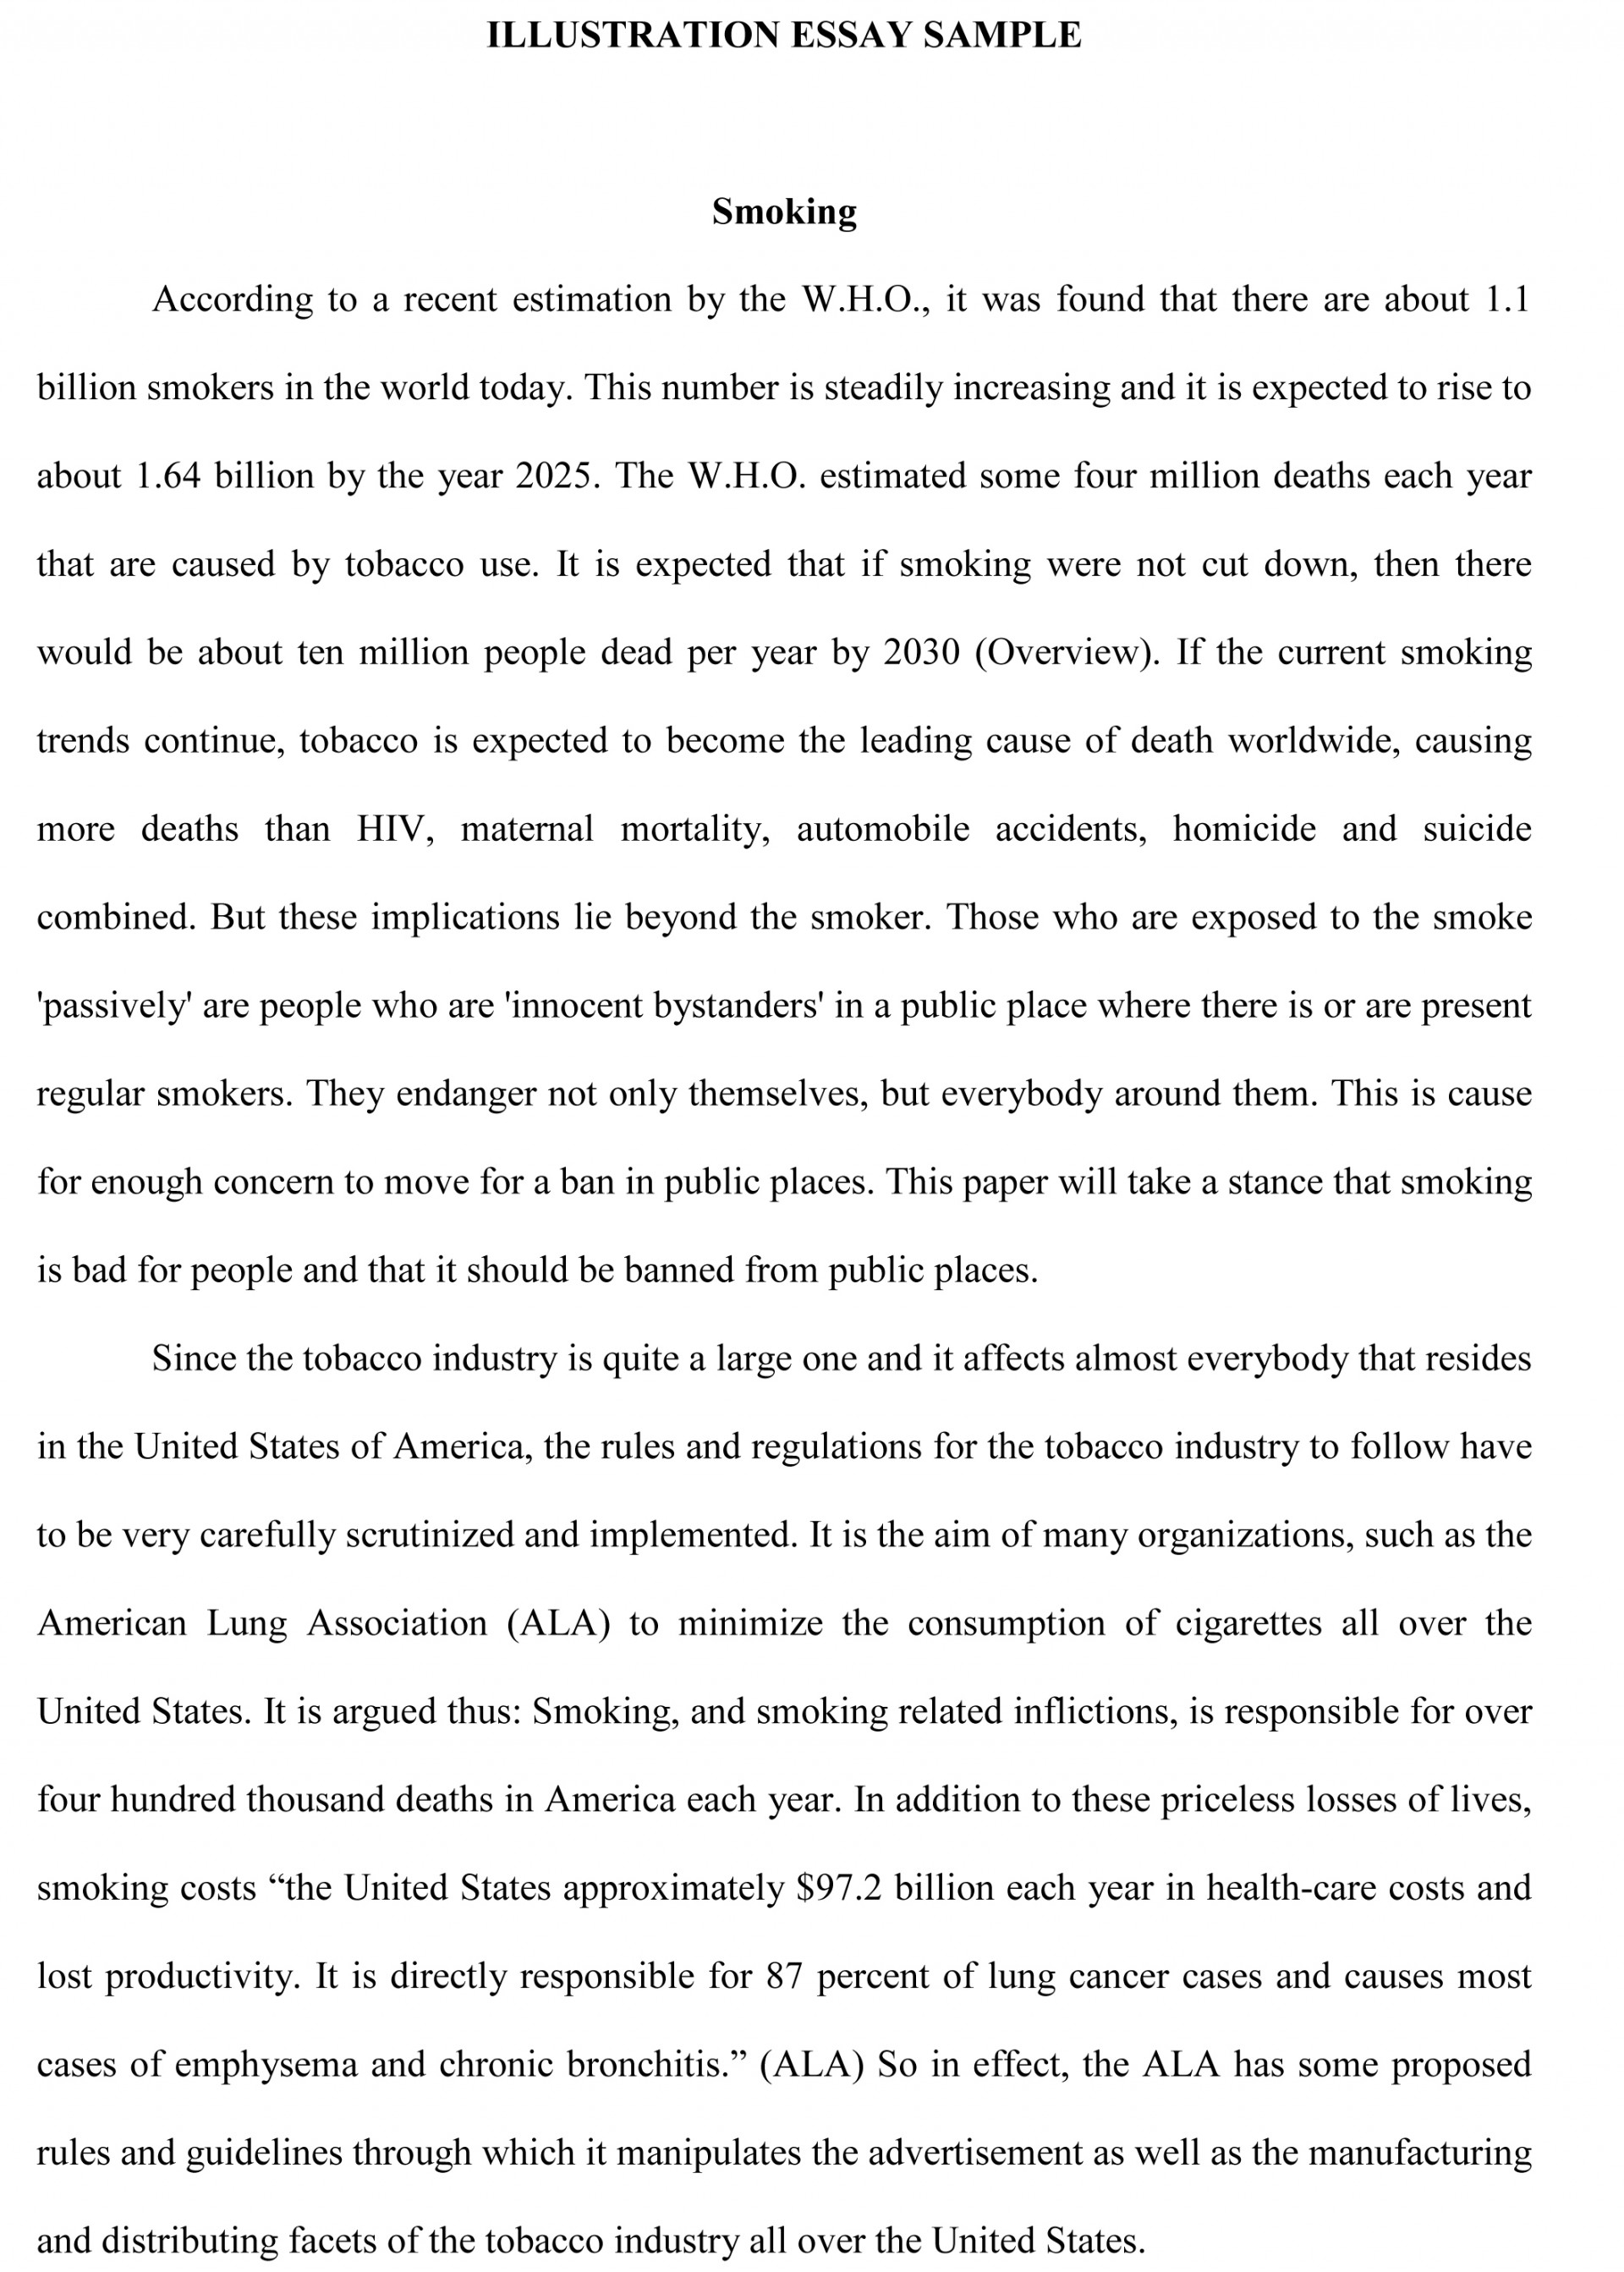 007 Essay Example Illustration Sample Act Fearsome Examples Good Score Average 1920